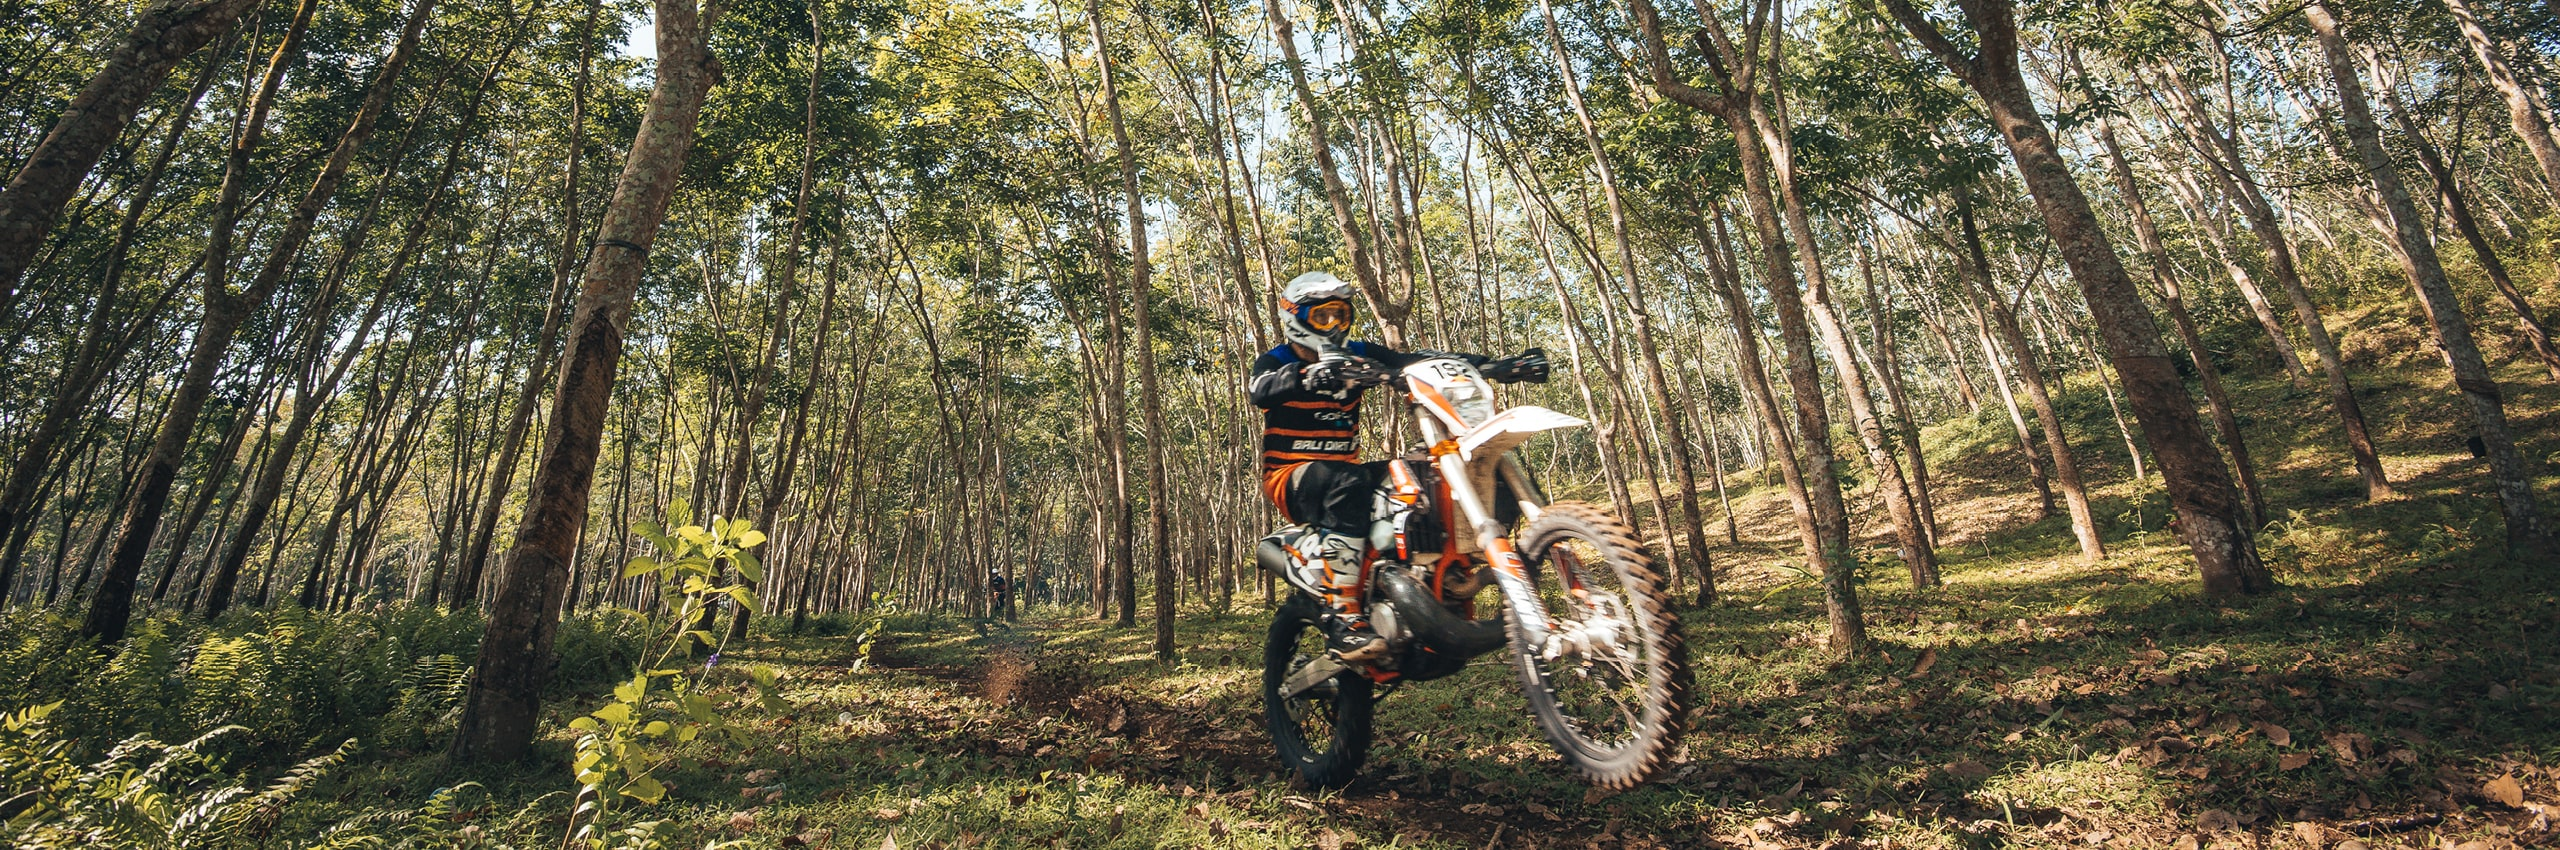 Bali_Dirt_Bikes_Rubber_Forest_Slider5